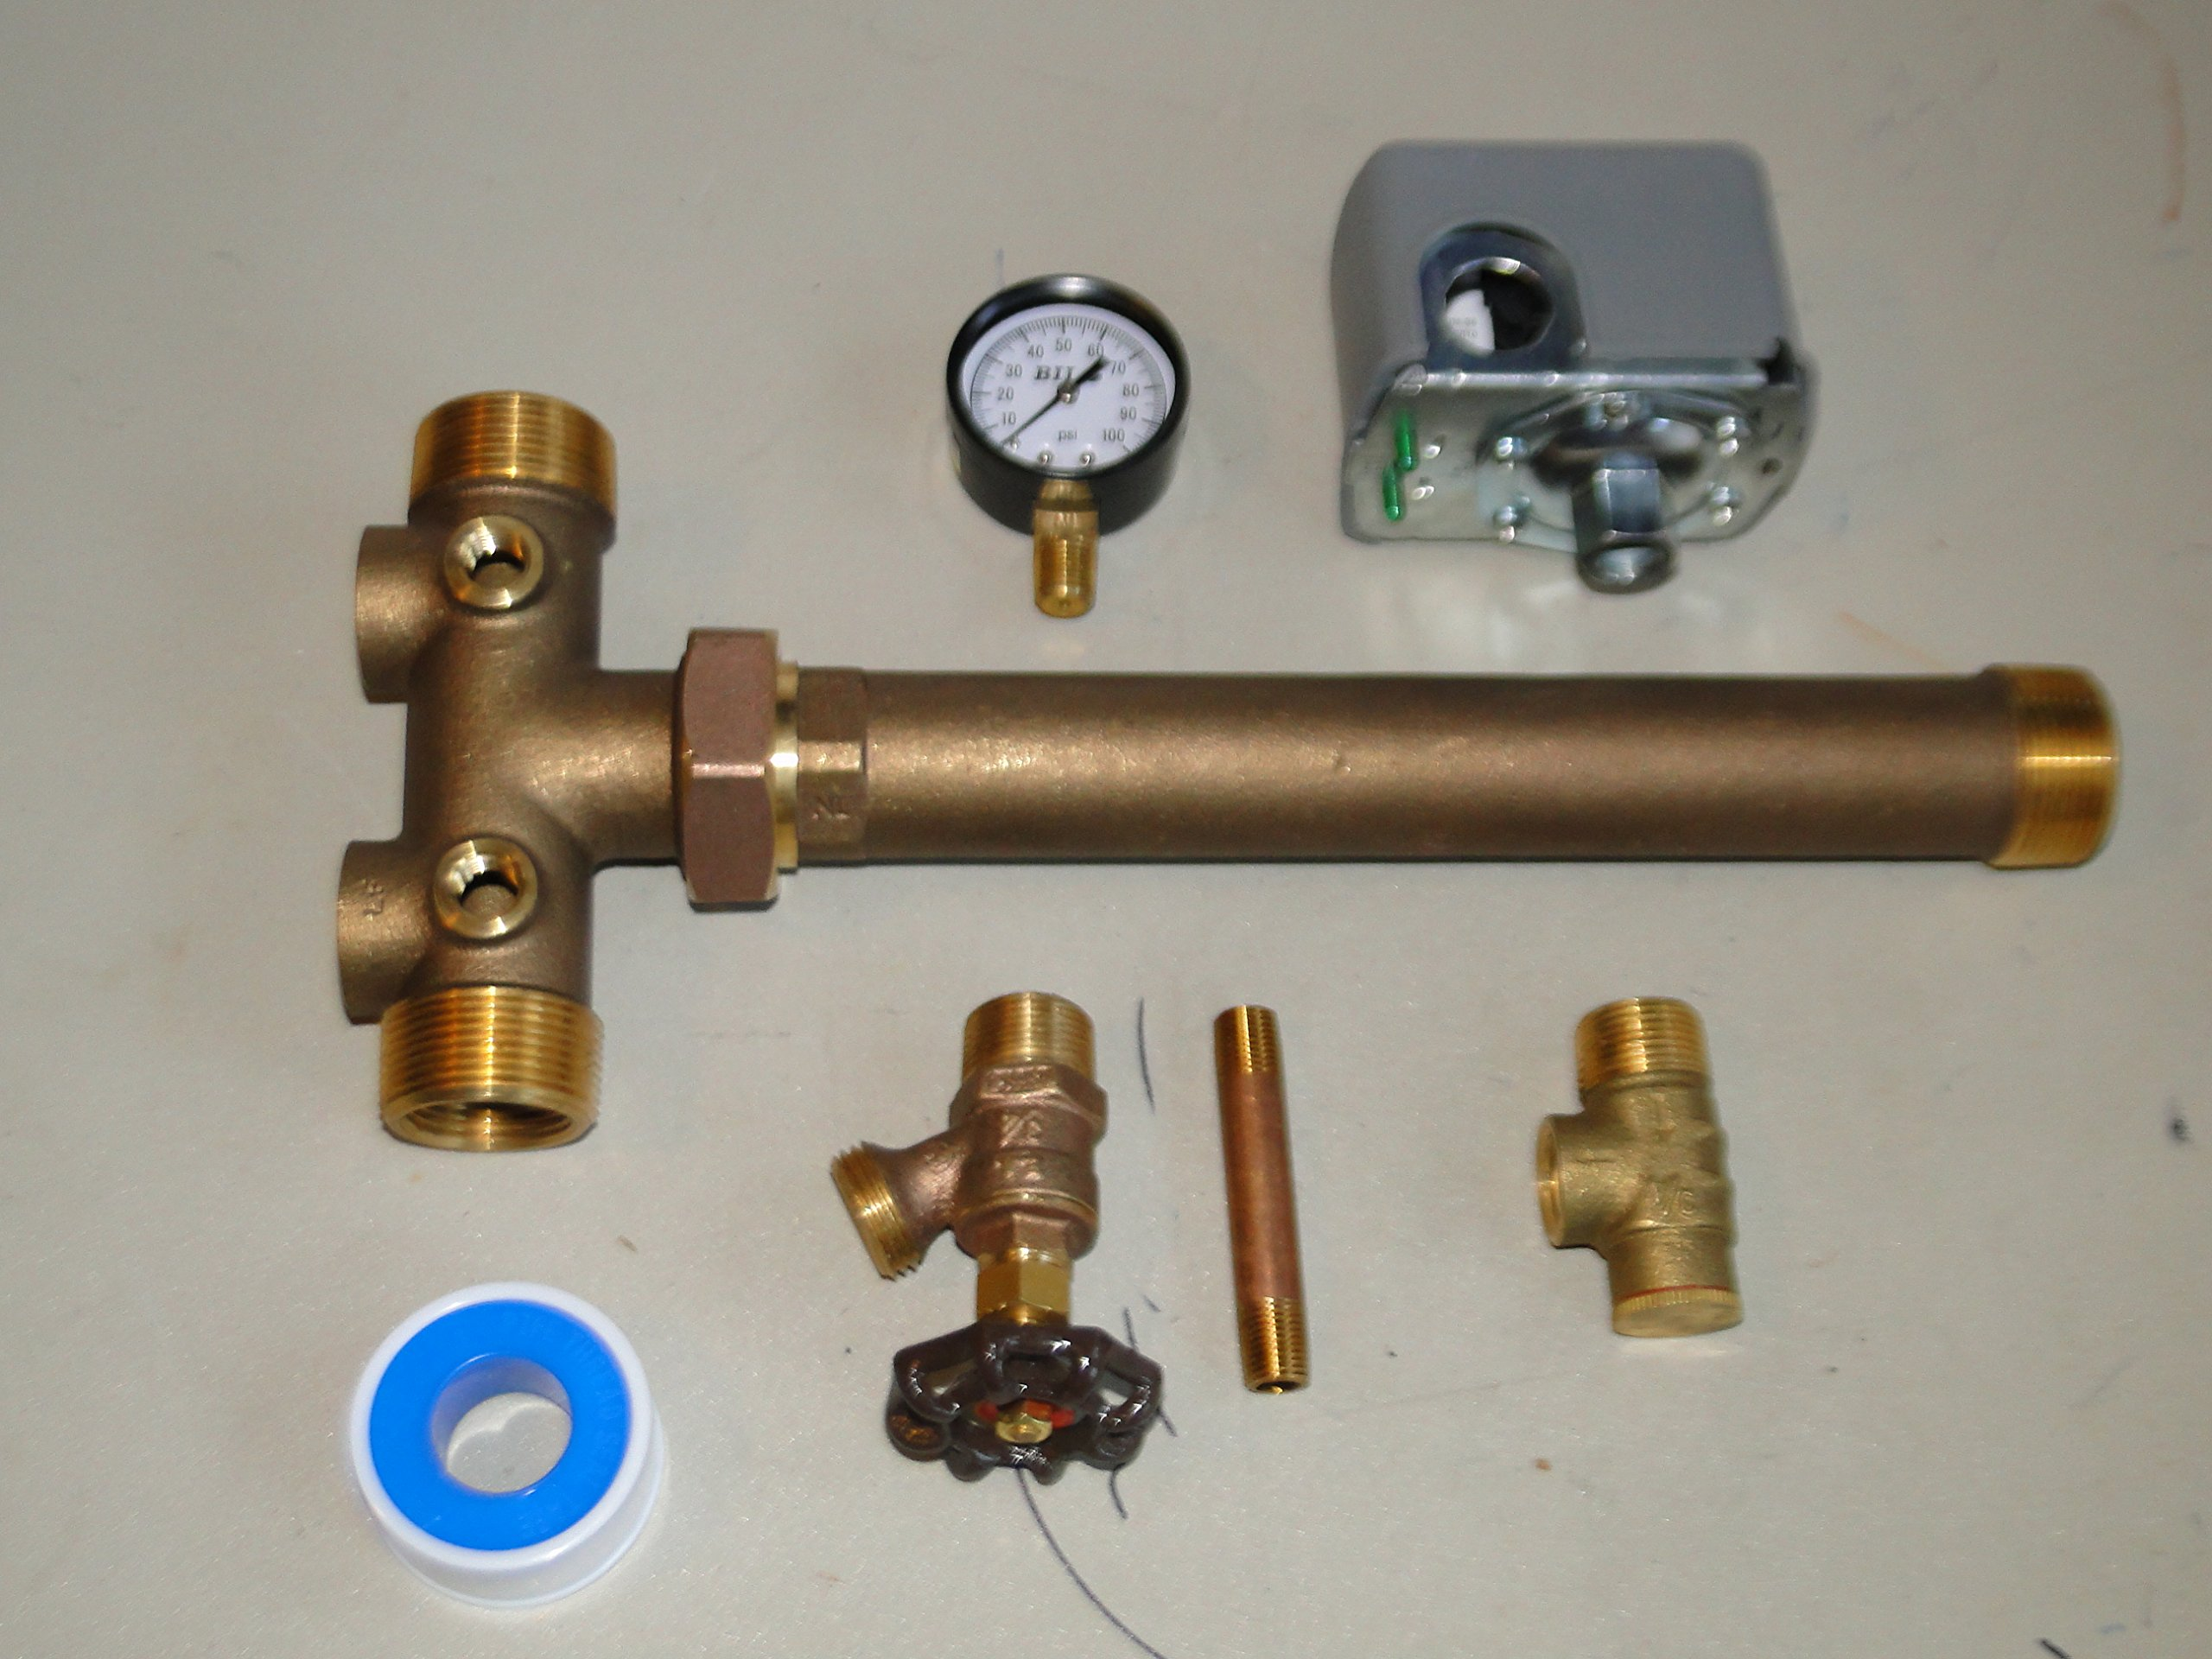 1 x 11 Tank Tee with UNION Kit Installation Water Well Pressure Tank with SQUARE D 40/60 pressure switch NO LEAD